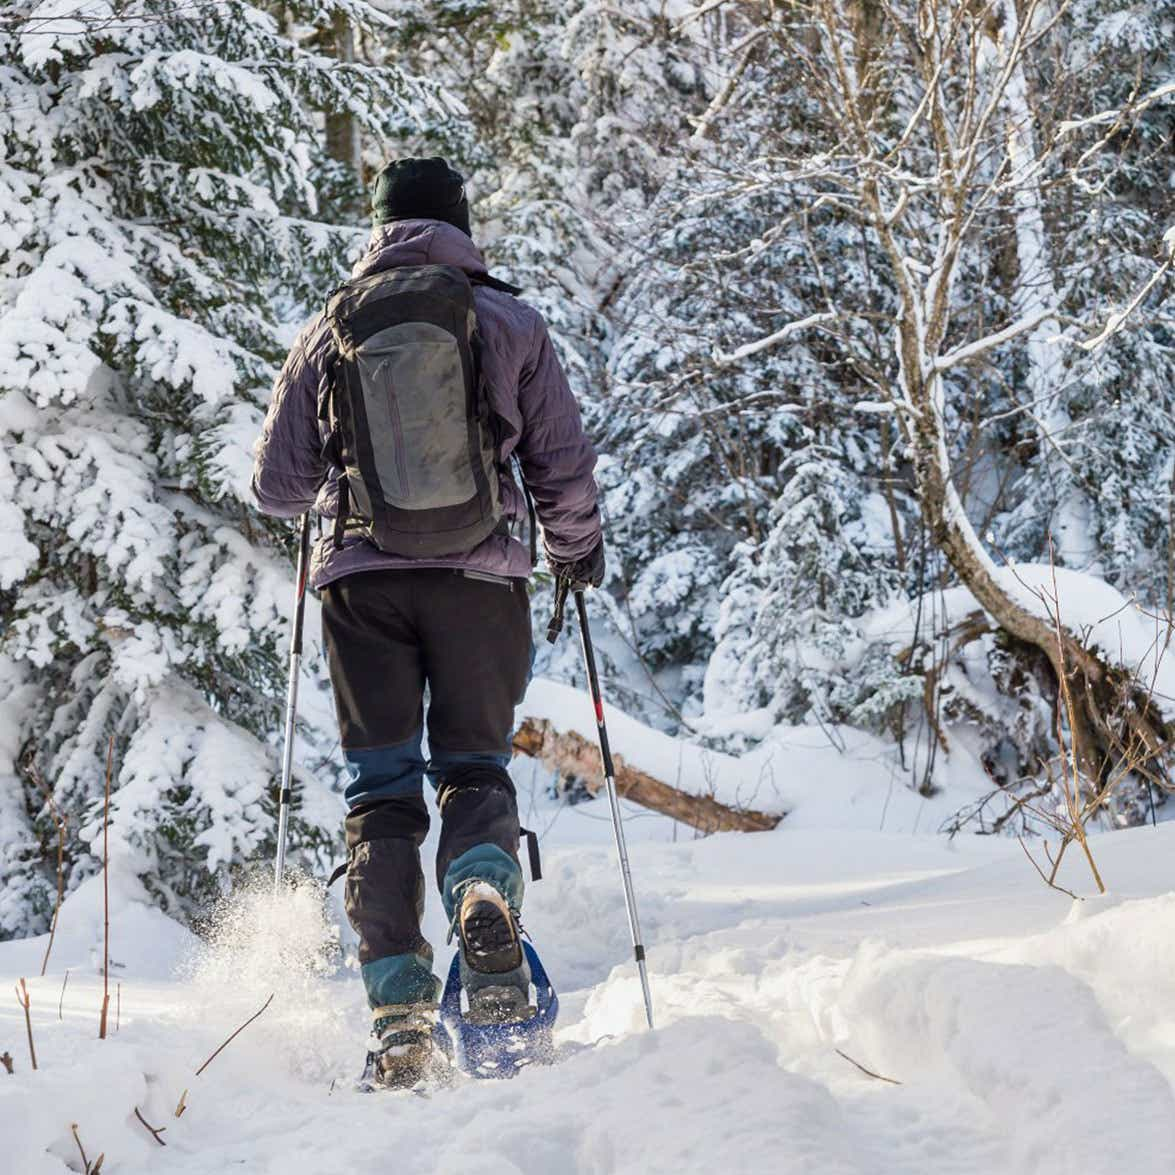 A person in winter gear snow shoeing